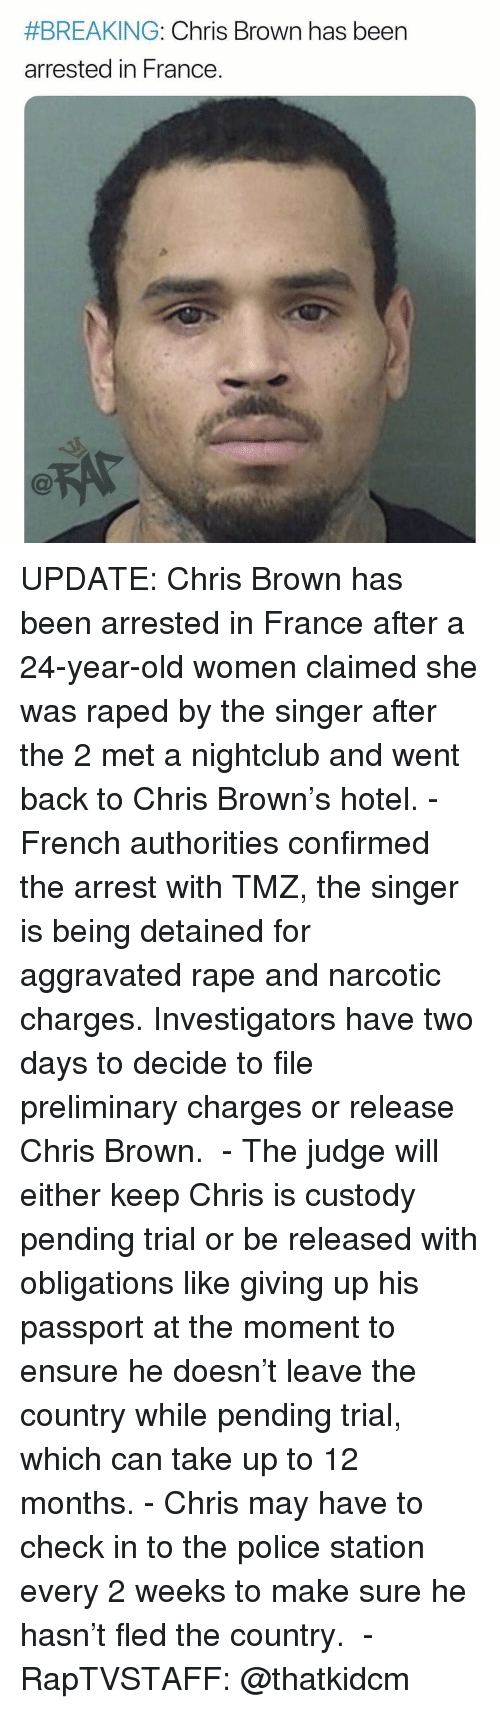 Chris Brown, Memes, and Police:  #BREAKING: Chris Brown has been  arrested in France UPDATE: Chris Brown has been arrested in France after a 24-year-old women claimed she was raped by the singer after the 2 met a nightclub and went back to Chris Brown's hotel.⁣ -⁣ French authorities confirmed the arrest with TMZ, the singer is being detained for aggravated rape and narcotic charges. Investigators have two days to decide to file preliminary charges or release Chris Brown. ⁣ -⁣ The judge will either keep Chris is custody pending trial or be released with obligations like giving up his passport at the moment to ensure he doesn't leave the country while pending trial, which can take up to 12 months.⁣ -⁣ Chris may have to check in to the police station every 2 weeks to make sure he hasn't fled the country. ⁣ -⁣ RapTVSTAFF: @thatkidcm